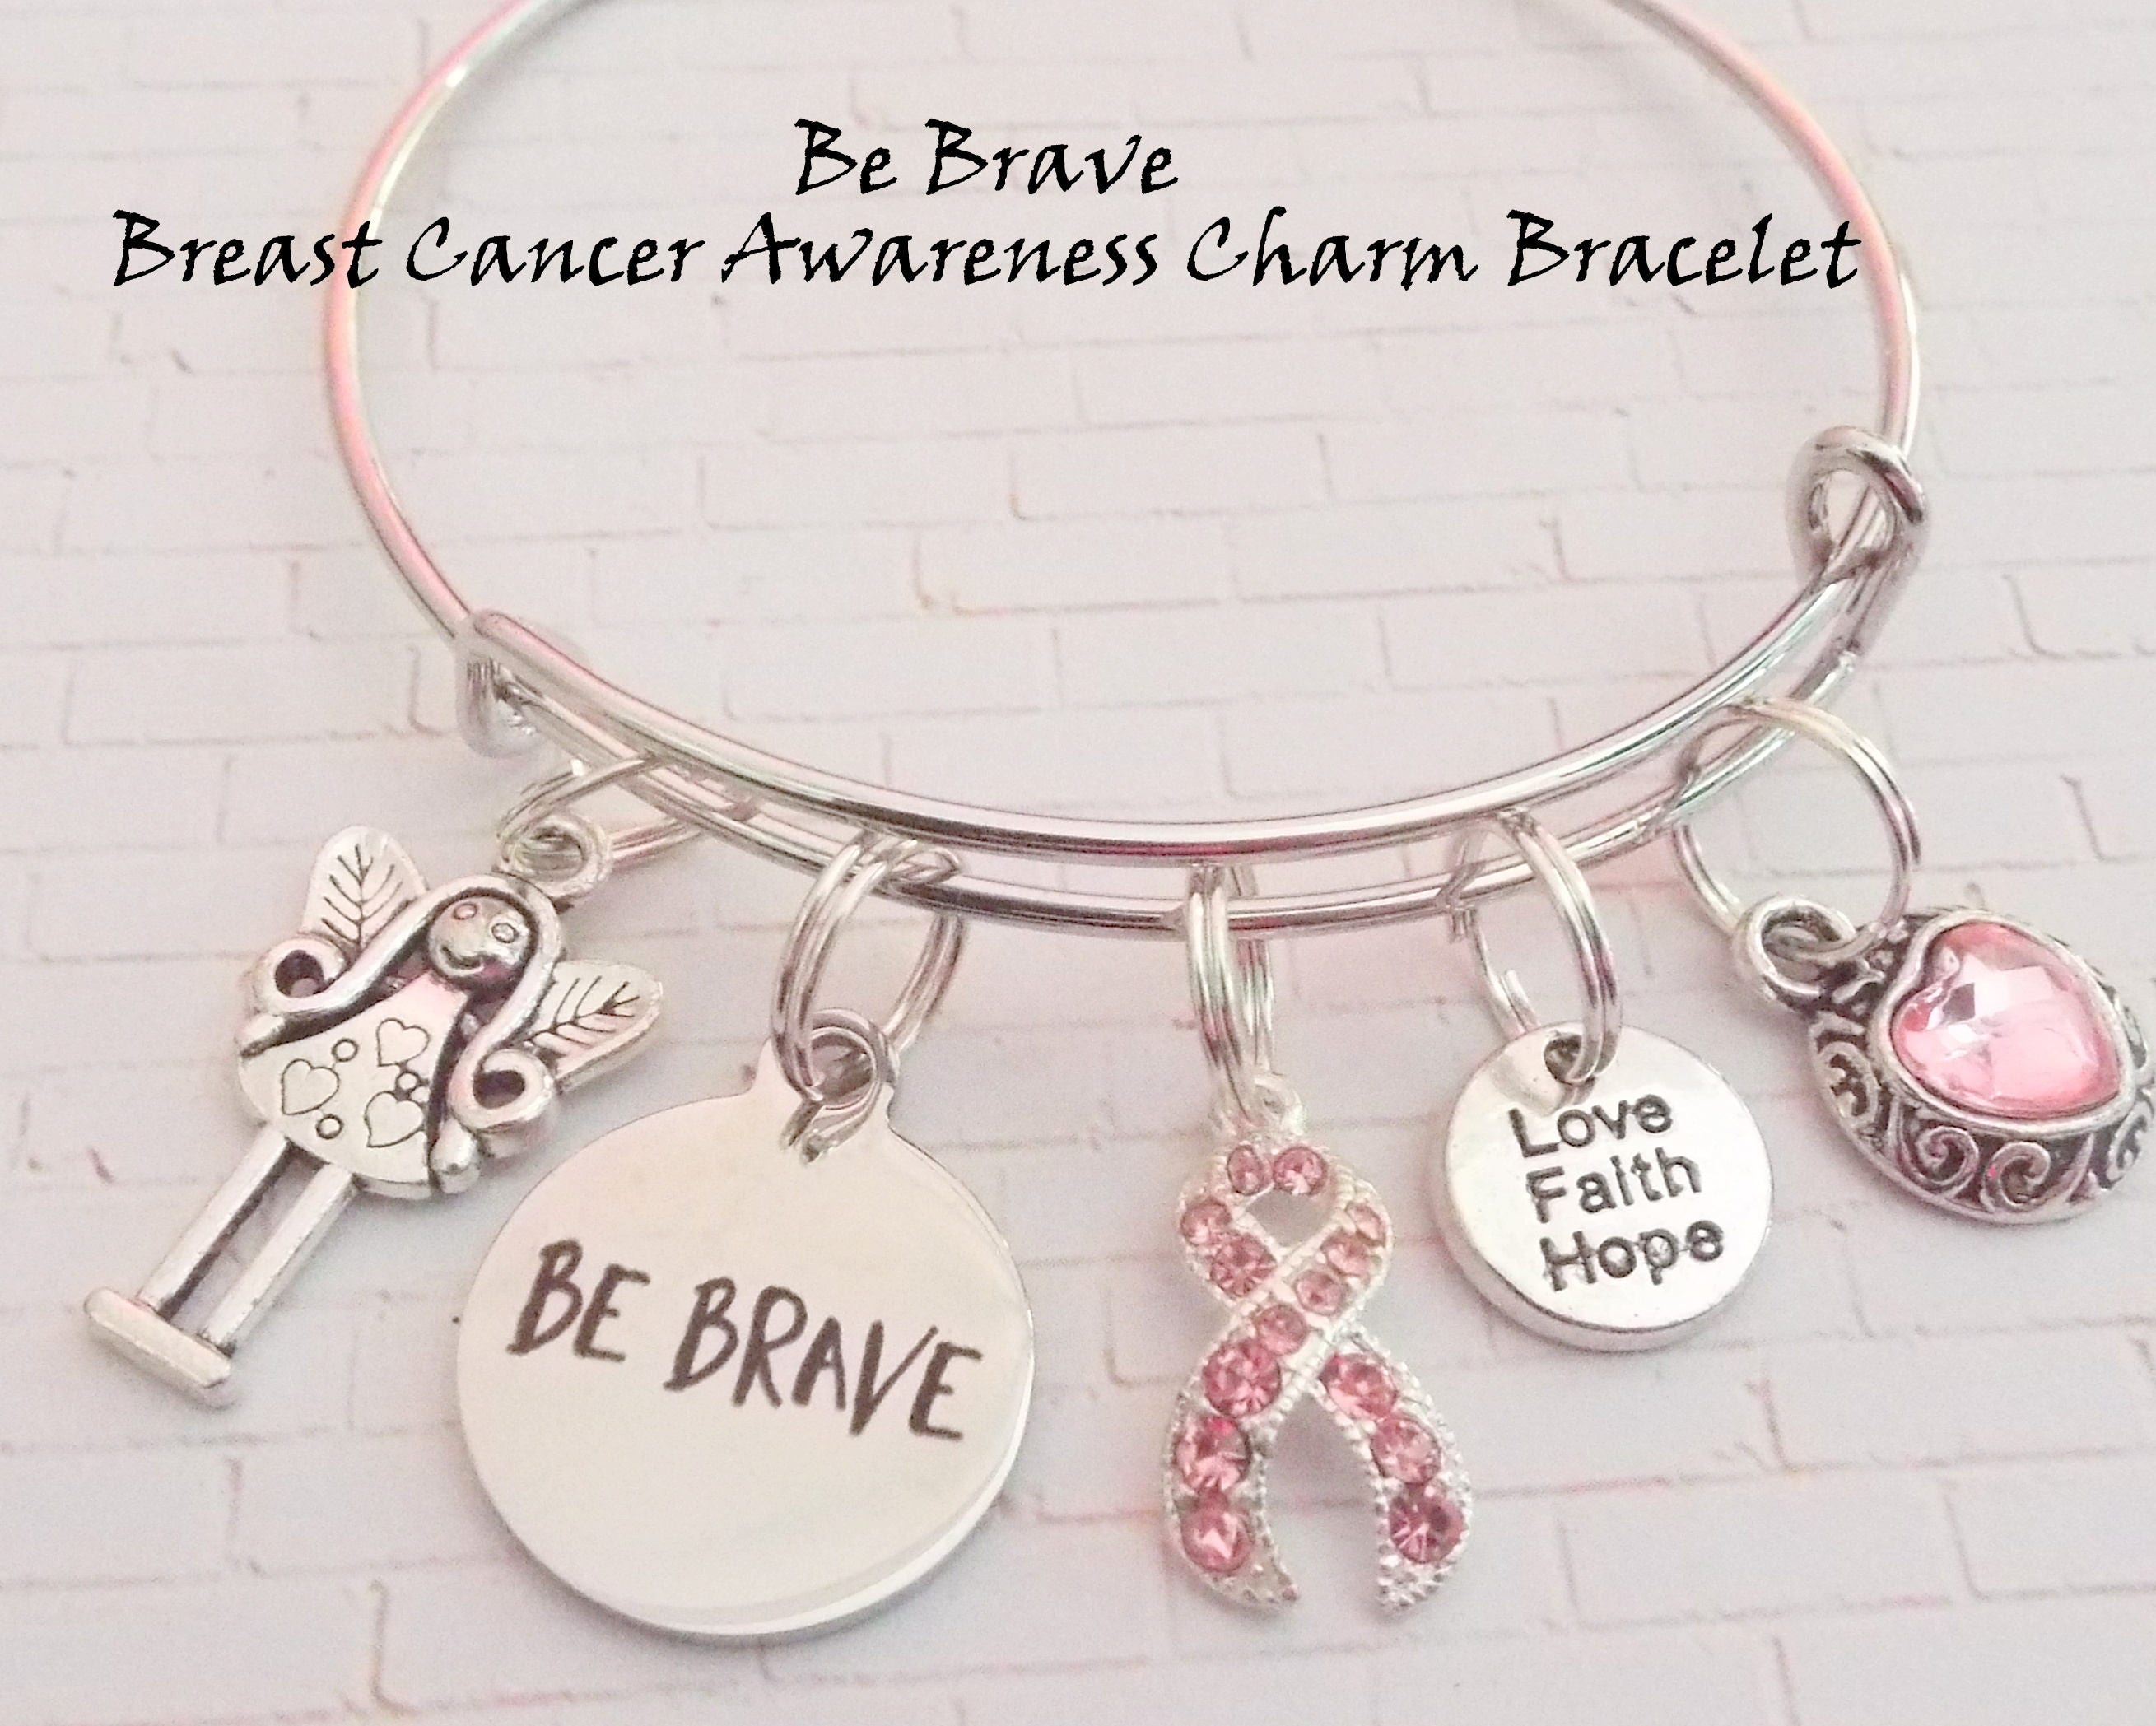 melanoma survivor bracelet non cancer breast bladder give lung charm brain pin ever up never